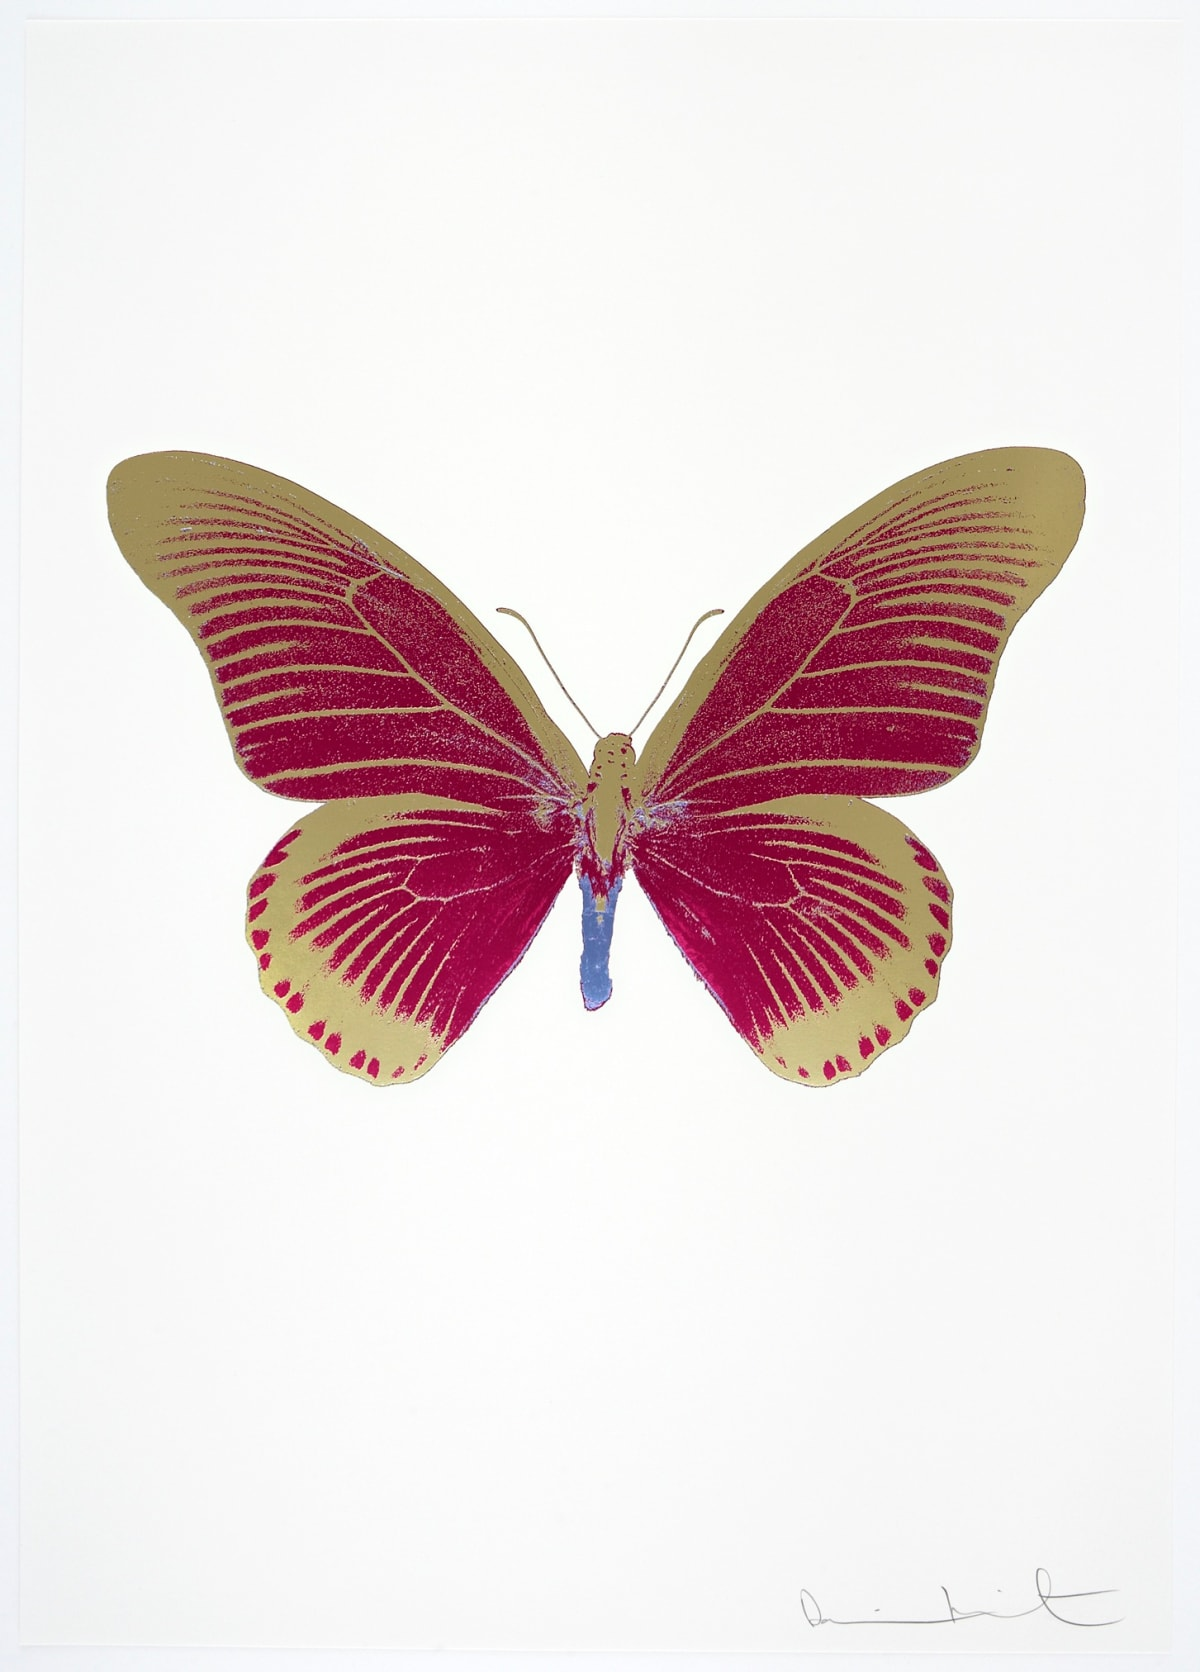 Damien Hirst The Souls IV - Fuchsia Pink/Cool Gold/Cornflower Blue, 2010 3 colour foil block on 300gsm Arches 88 archival paper. Signed and numbered. Published by Paul Stolper and Other Criteria 72 x 51cm OC8056 / 1418-79 Edition of 15